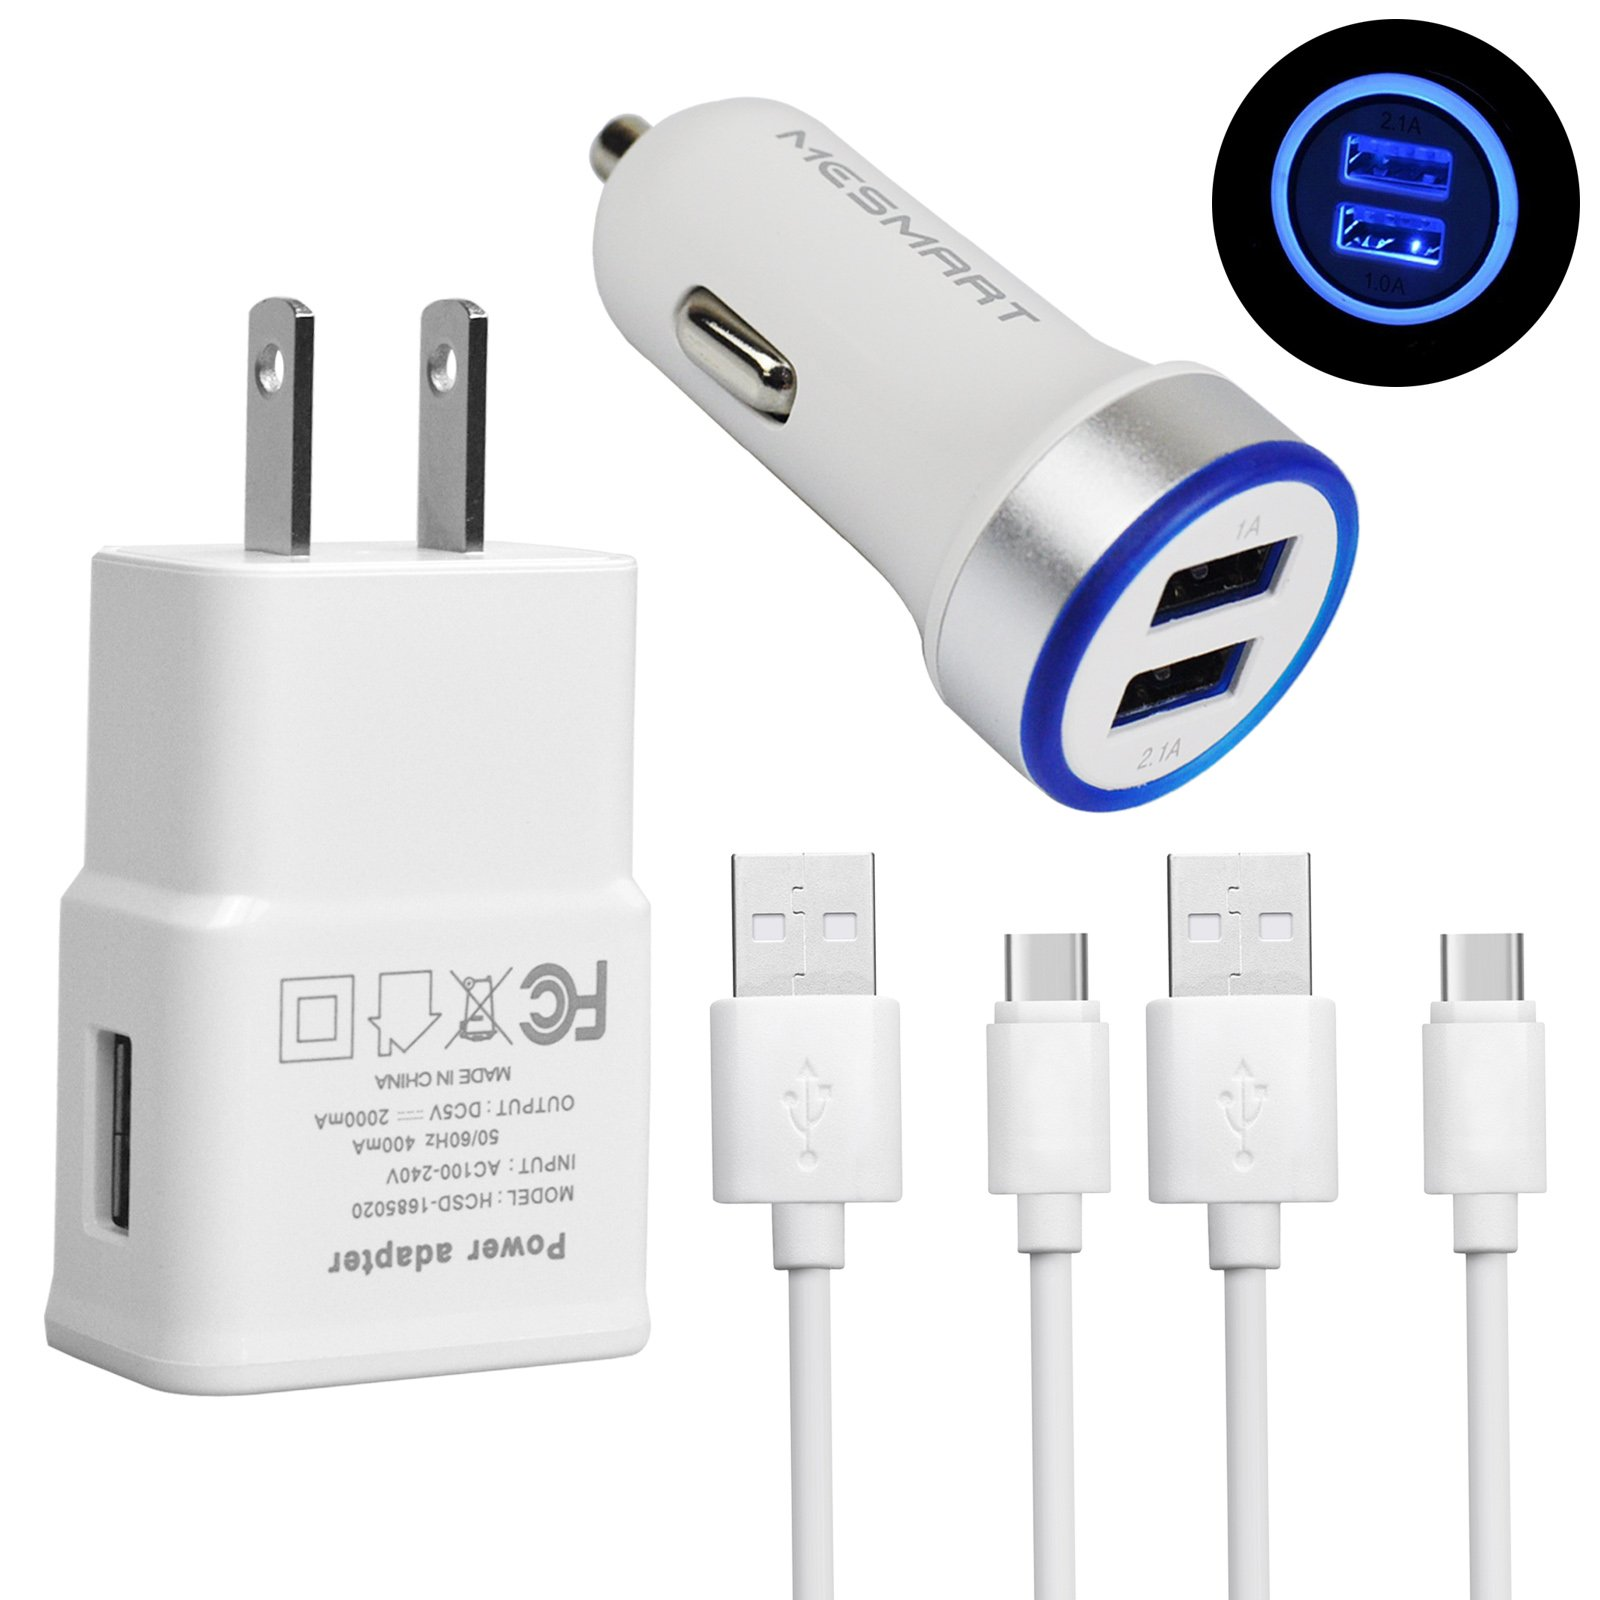 MESMART 1x LED Dual 3.1A Car Plug+1x 2A AC Home Wall Power Adapter Charger+2x USB Type C Cable Cords for LG Stylo 4 G7 ThinQ G6 G5 SE V30s V30 Google Pixel 2 XL Samsung Galaxy S9 S8 Active Note 8 Plus